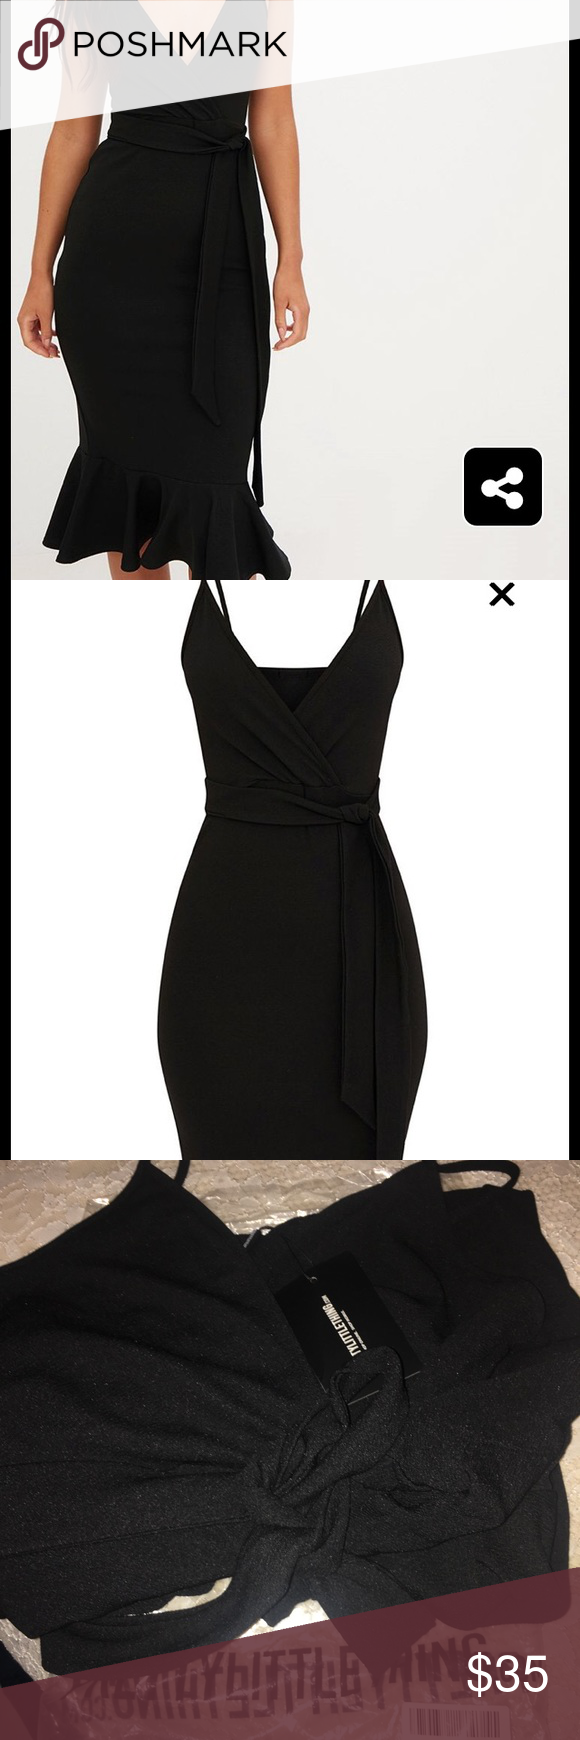 18e94ee45ae2 PRETTYLITTLETHING dress Style : BLACK STRAPPY TIE WAIST FISHTAIL MIDI DRESS  Never been worn , I bought the wrong size PrettyLittleThing Dresses Midi